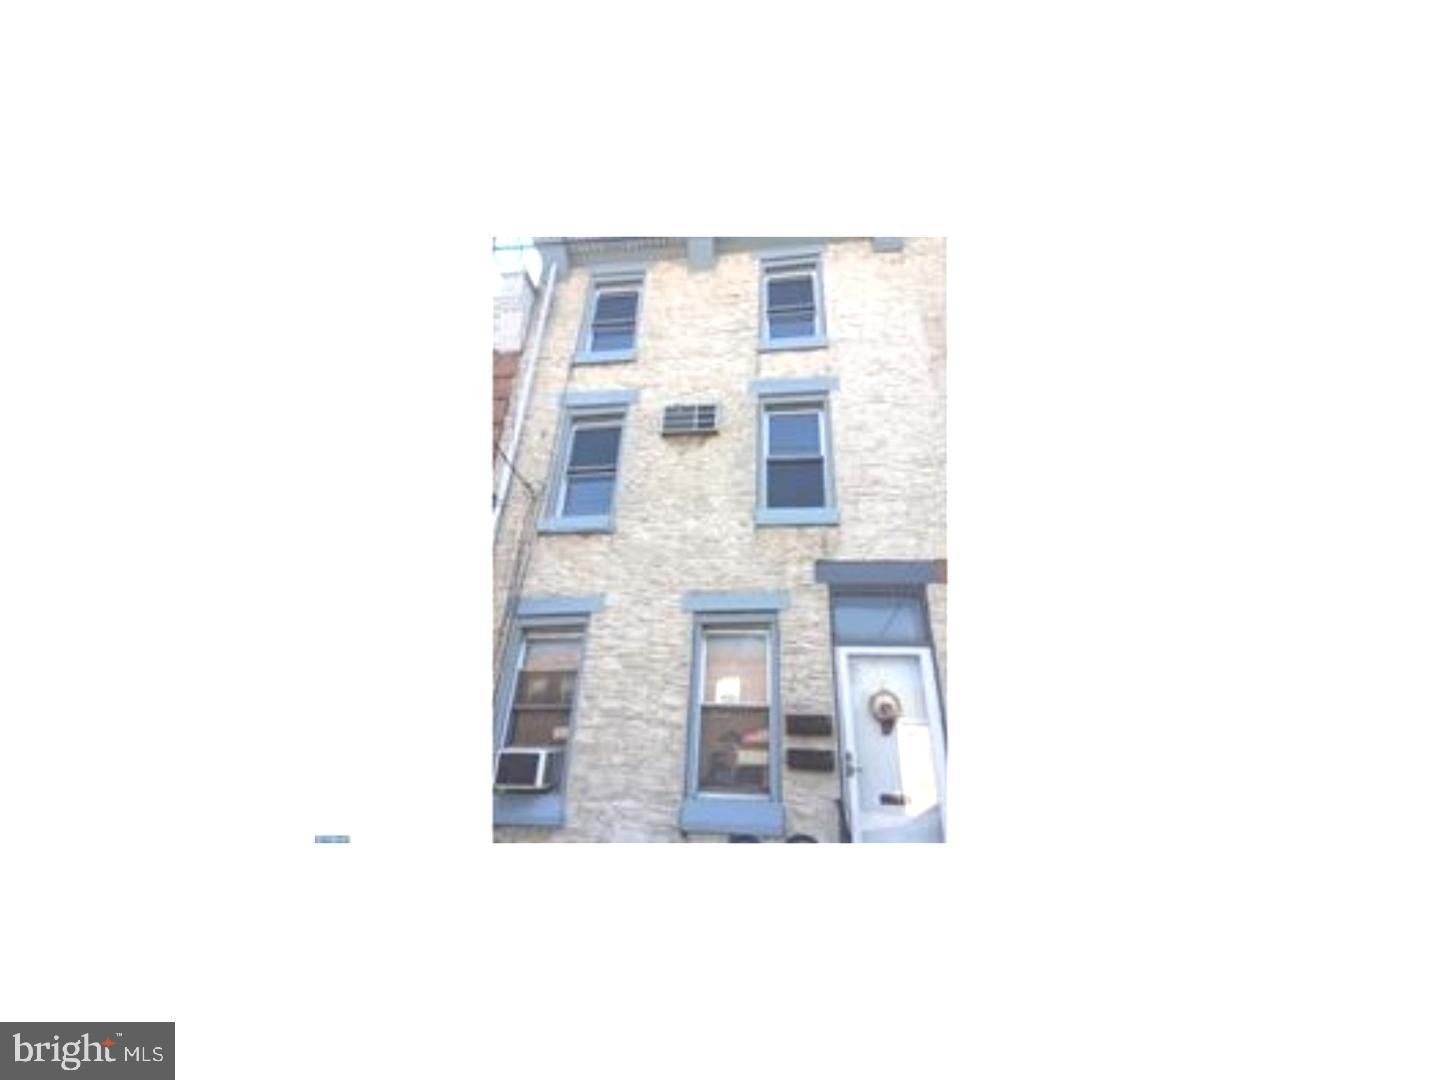 60 E 4TH STREET, BRIDGEPORT, PA 19405